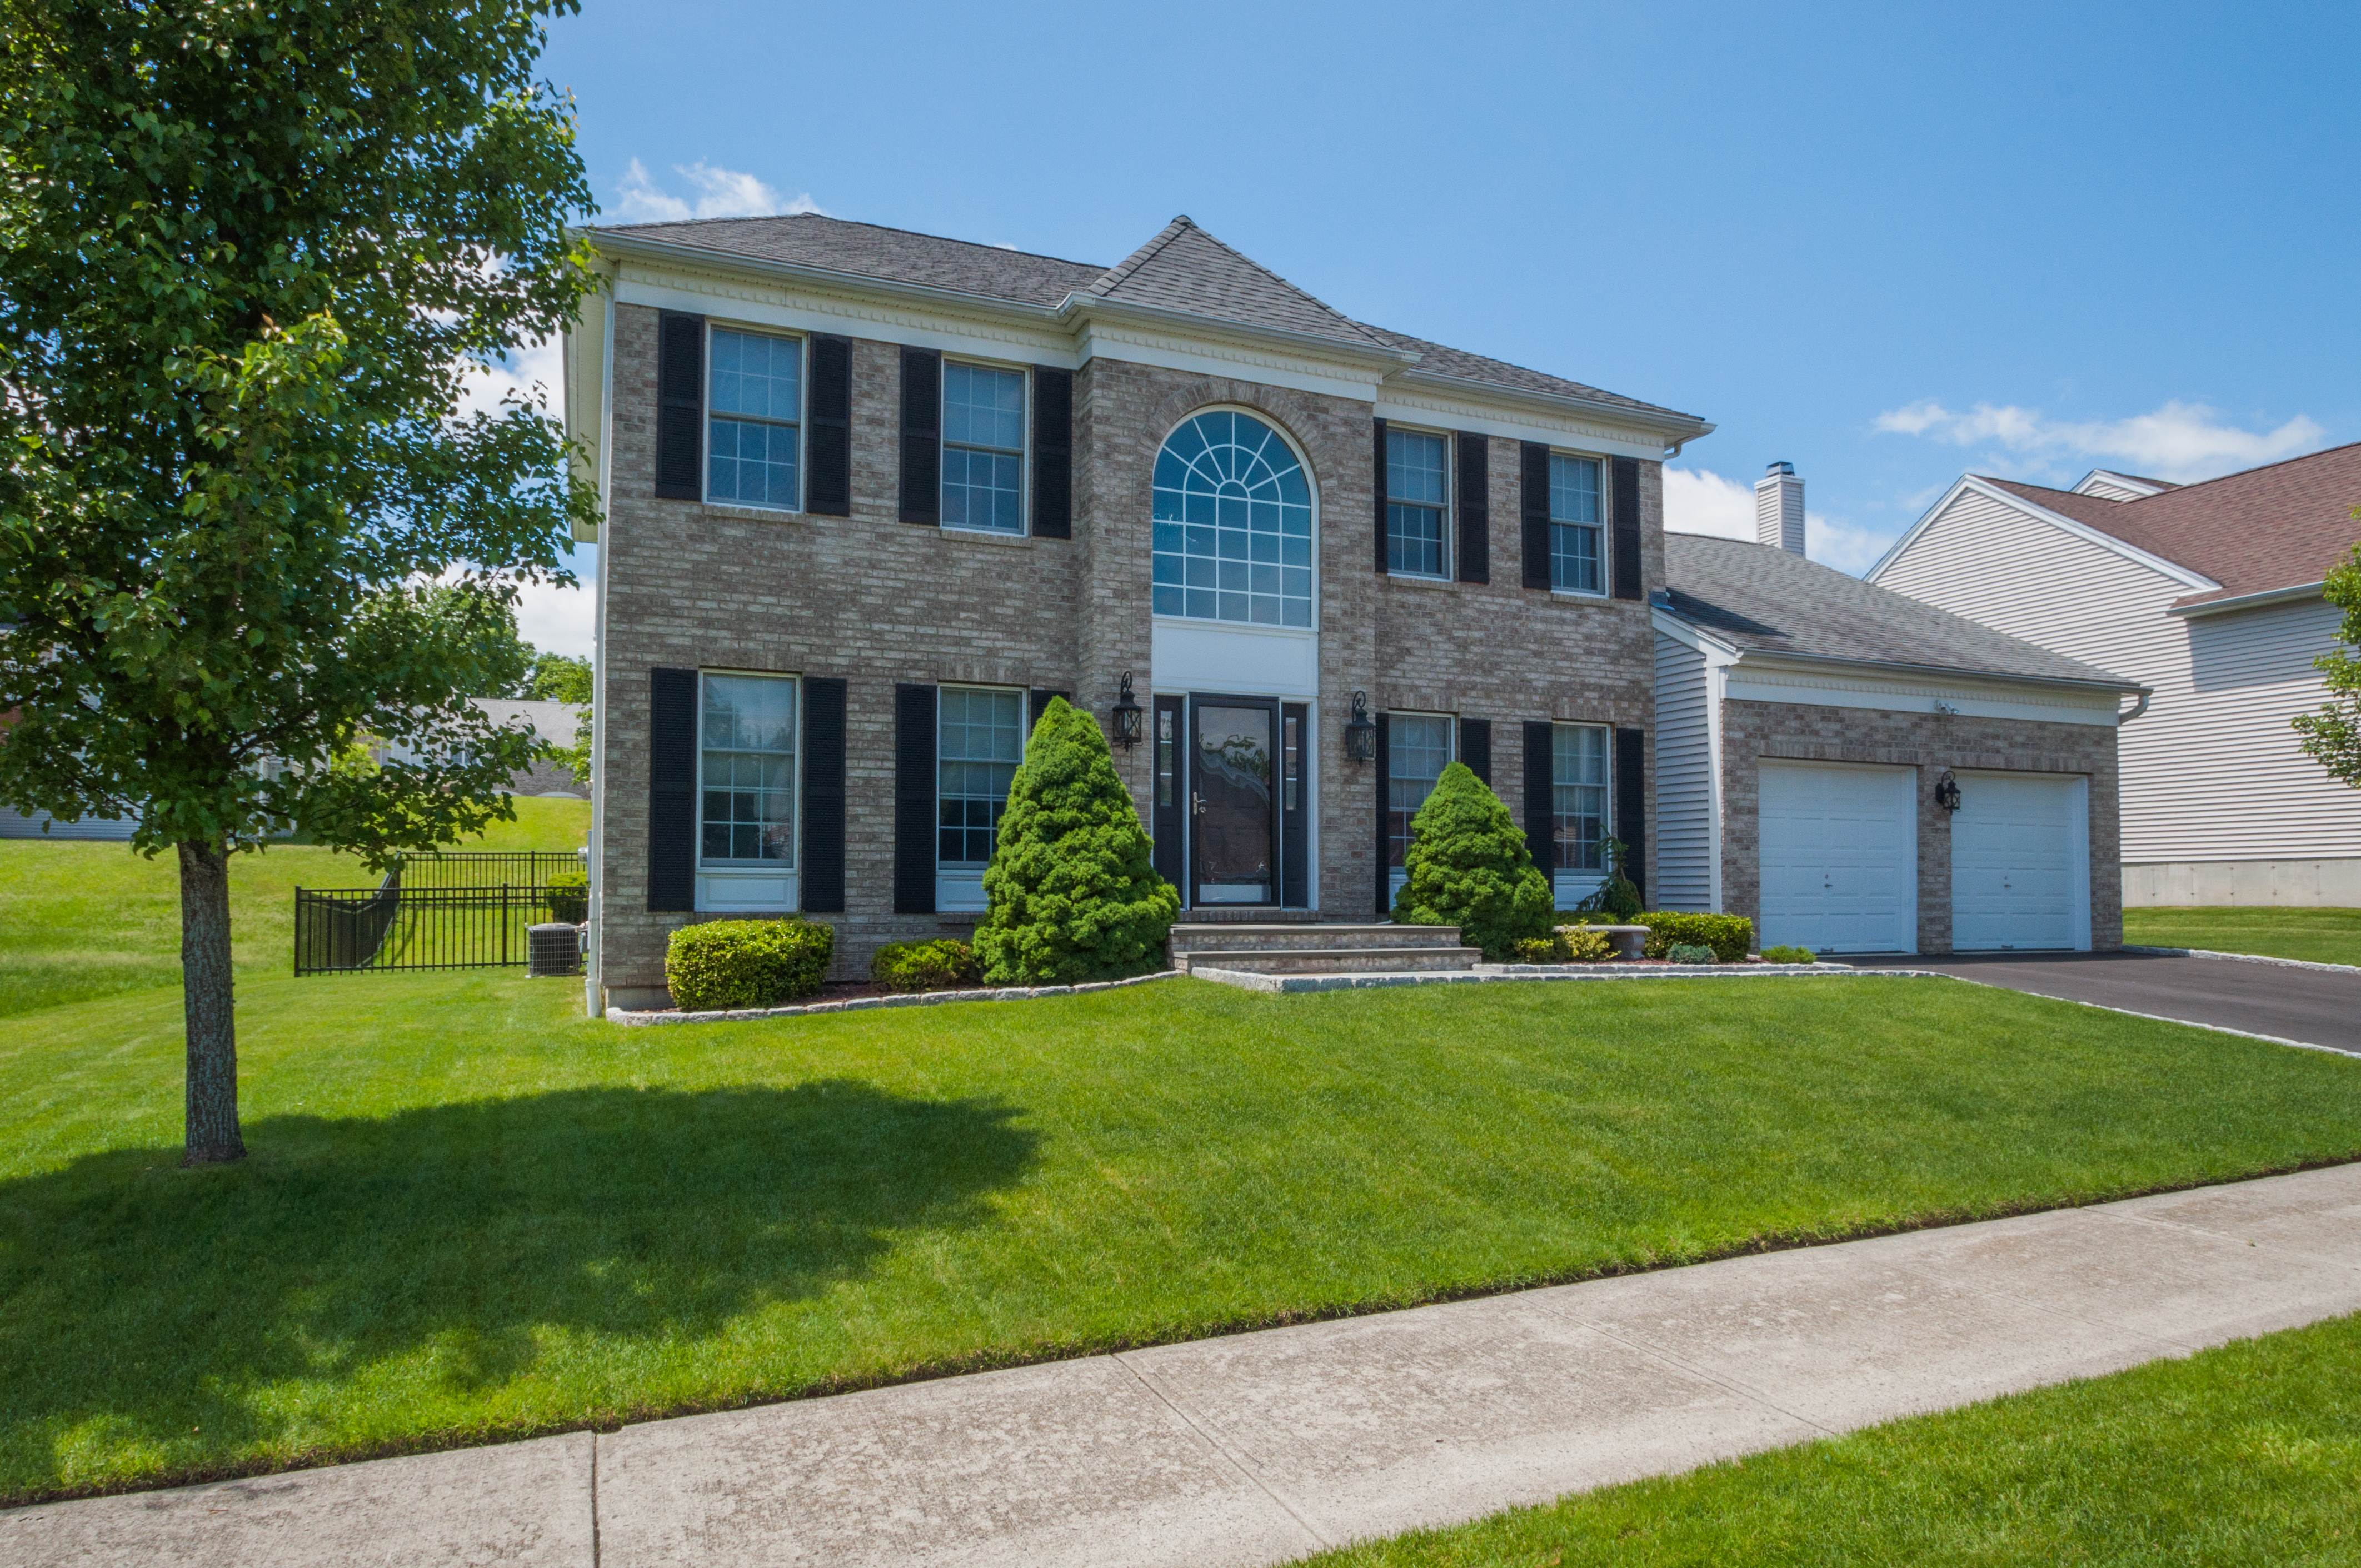 Single Family Home for Sale at Luxury Living At It's Best 8 Lilac Lane Danbury, Connecticut 06810 United States